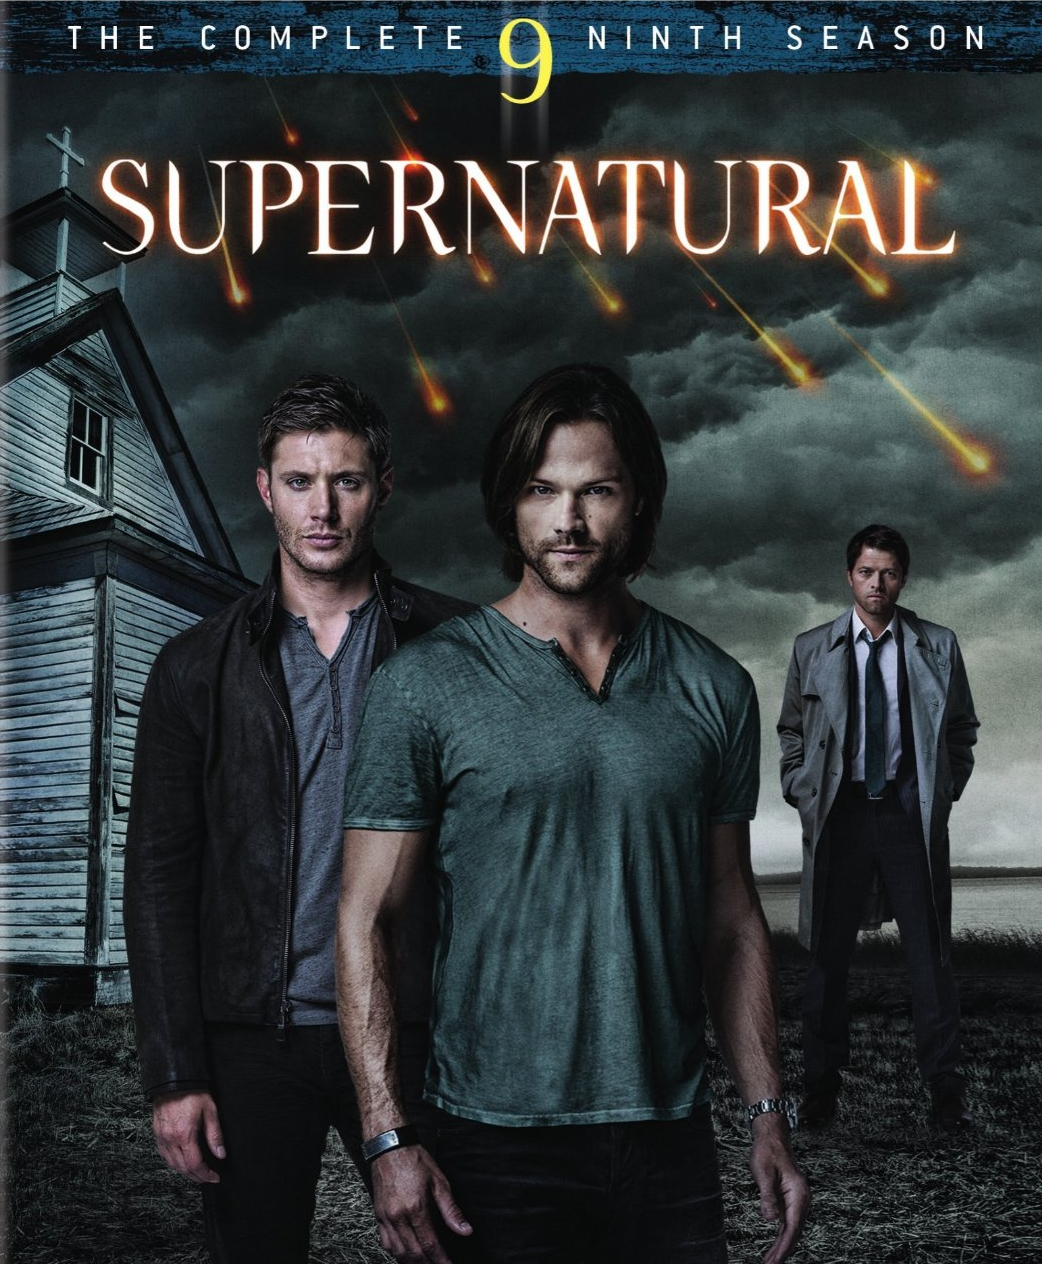 Supernatural: The Complete Ninth Season (DVD